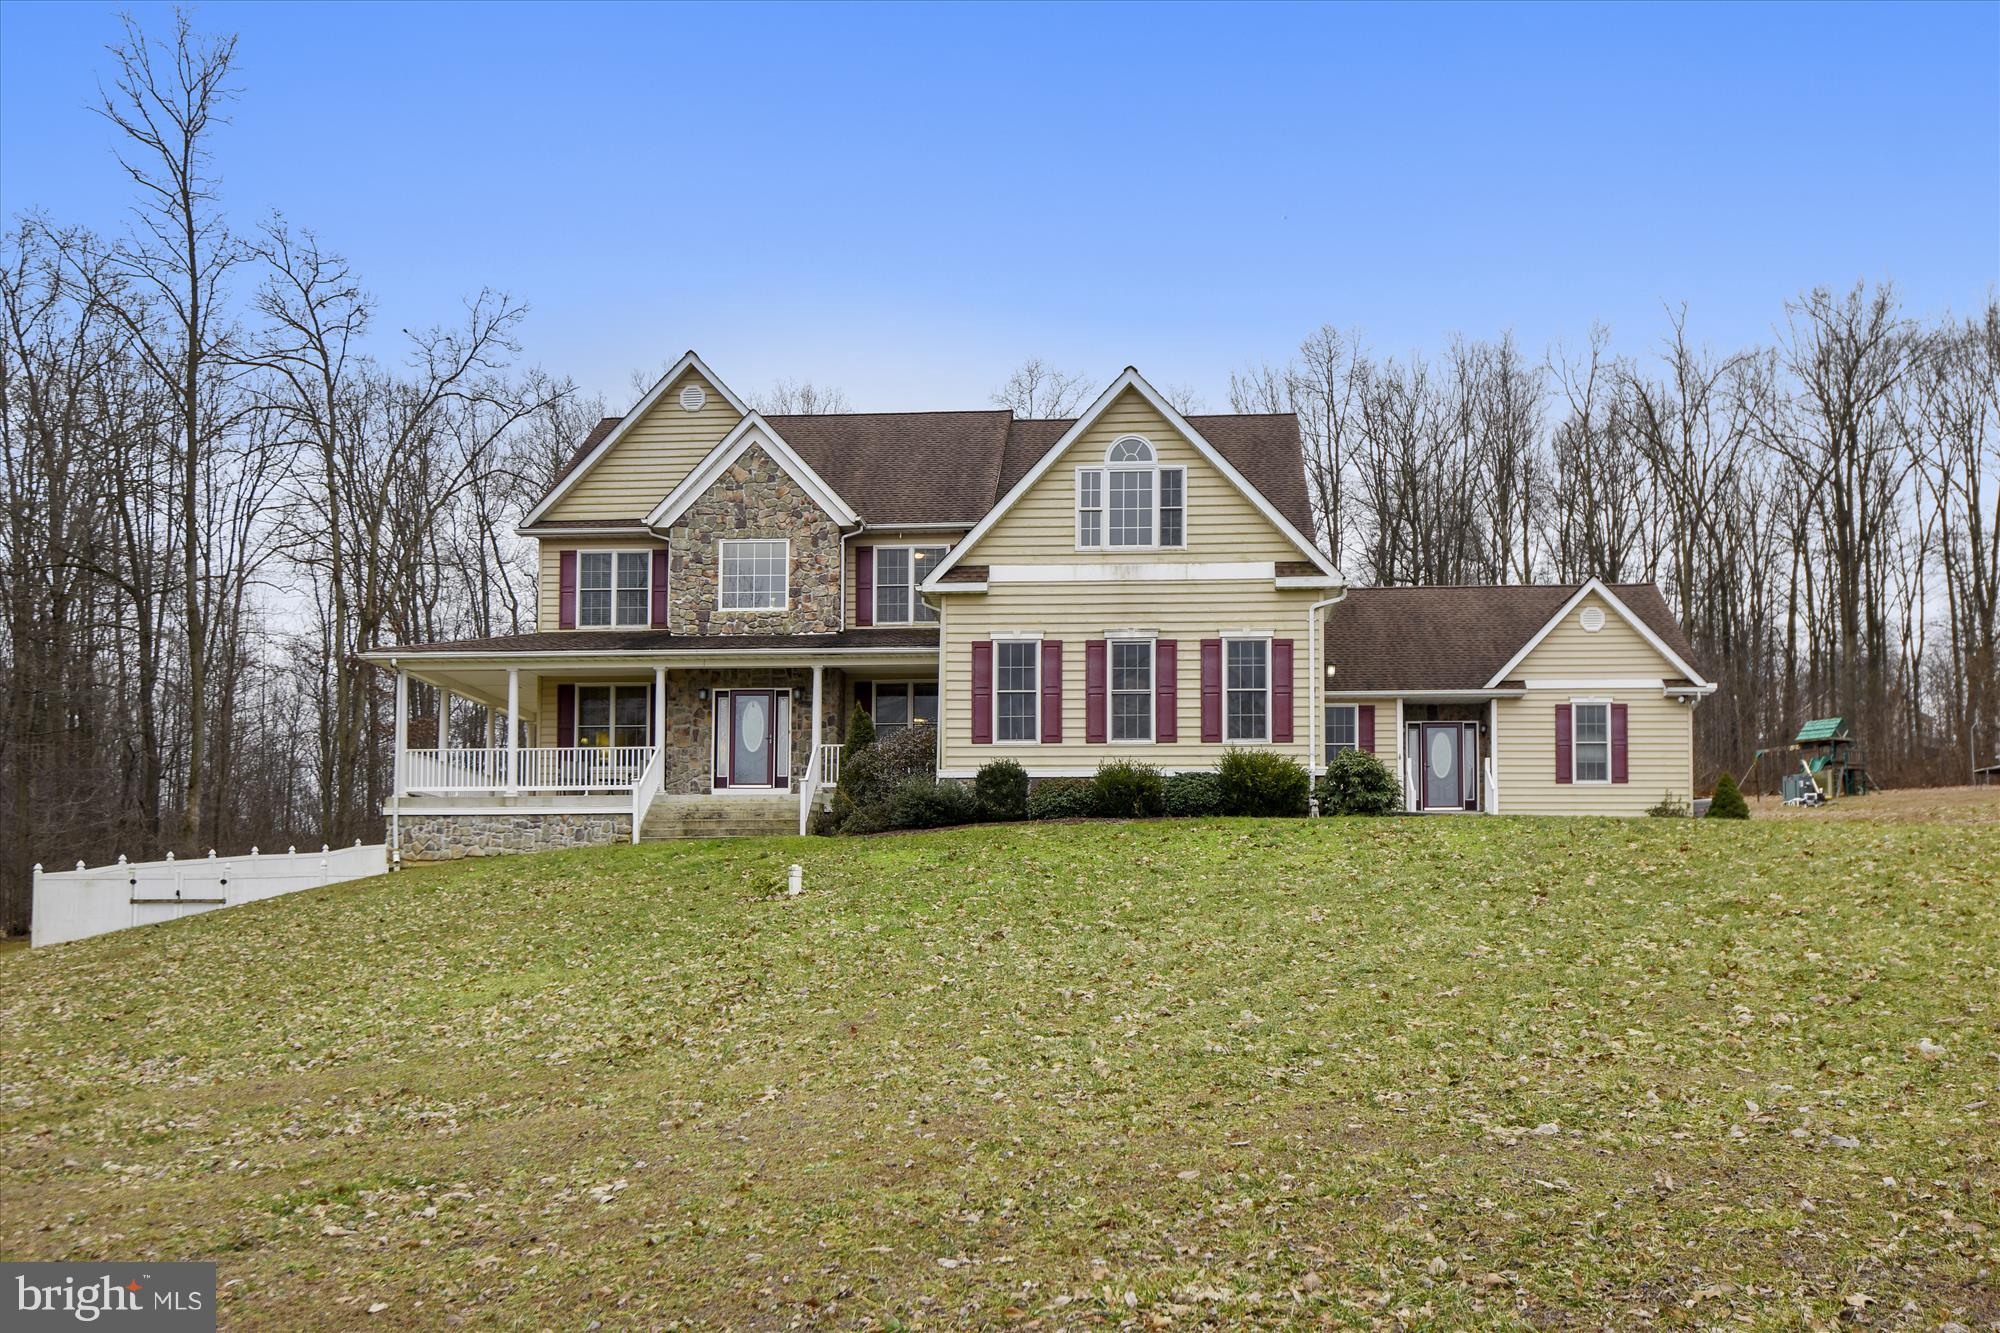 2987 TRACEYS MILL ROAD, MANCHESTER, MD 21102